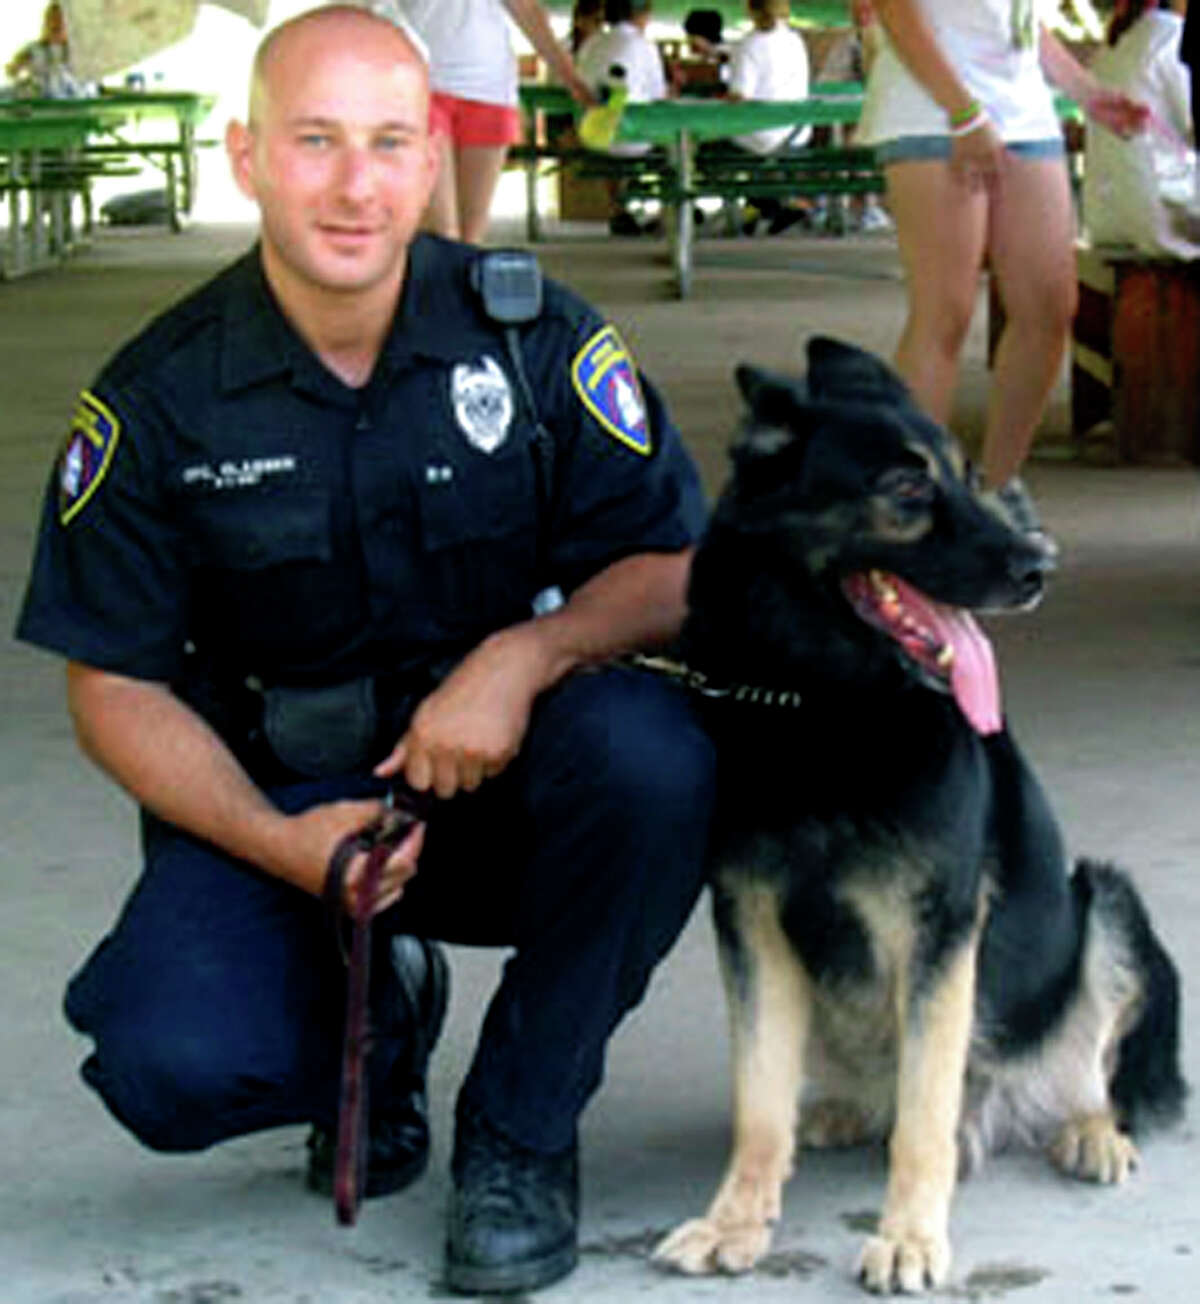 SPECTRUM/Brian Glasser, now a sergeant with the New Milford Police Department, is shown here in his favorite photo with police dog Onyx. Courtesy of the New Milford Police Department